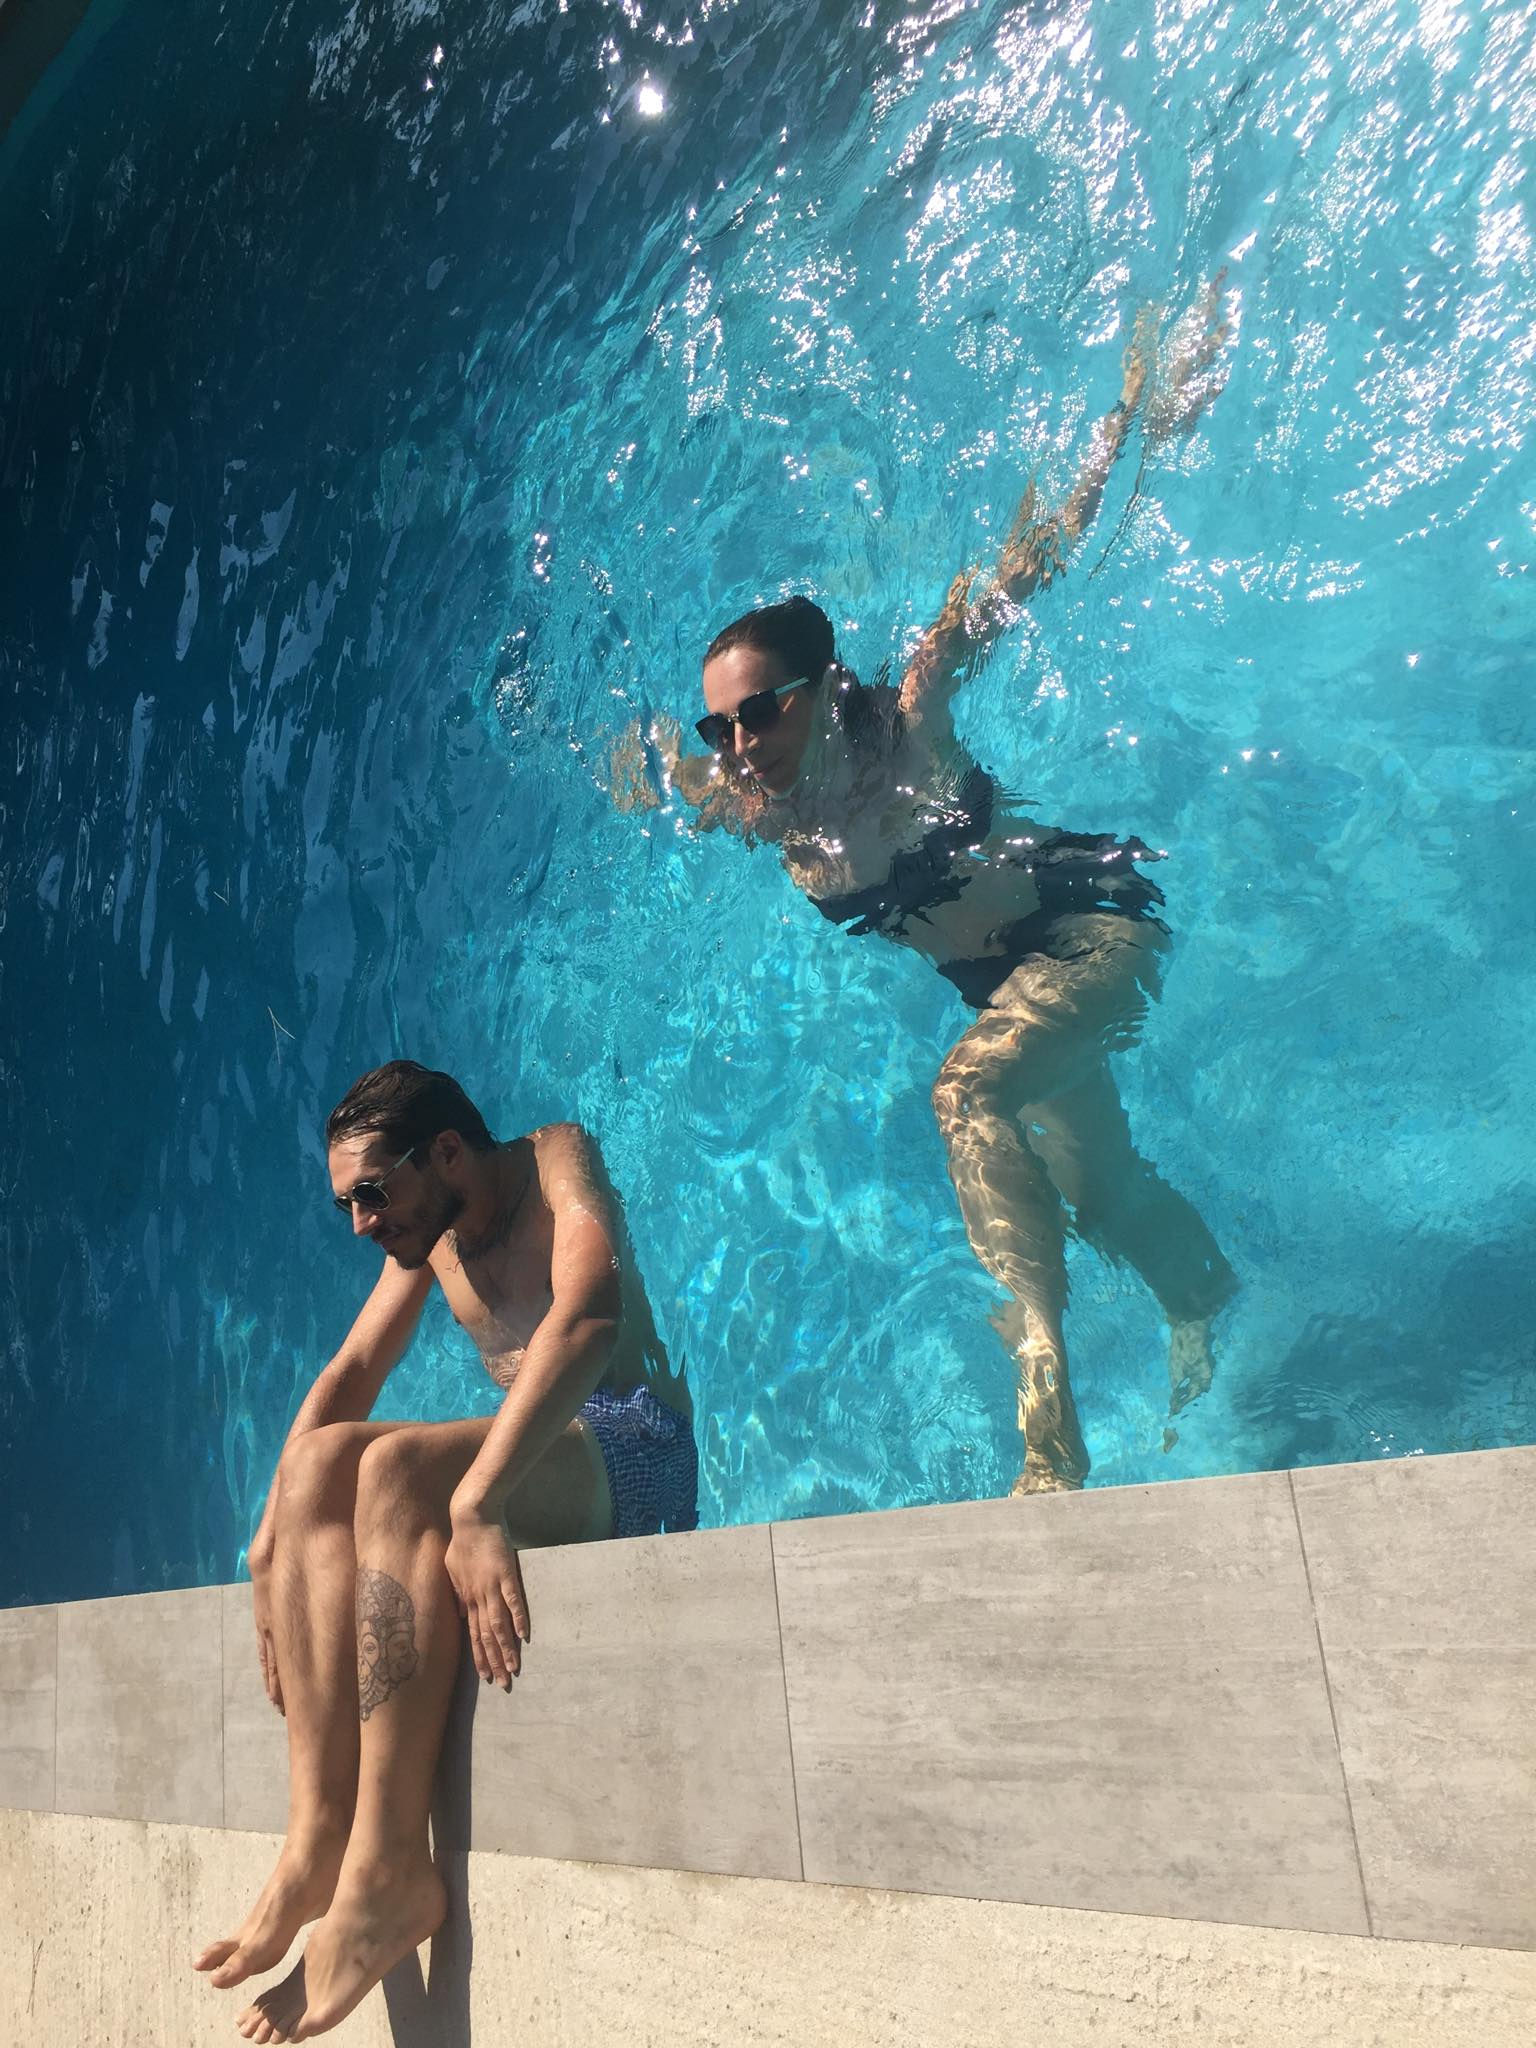 Forced perspective shot of two people in a swimming pool